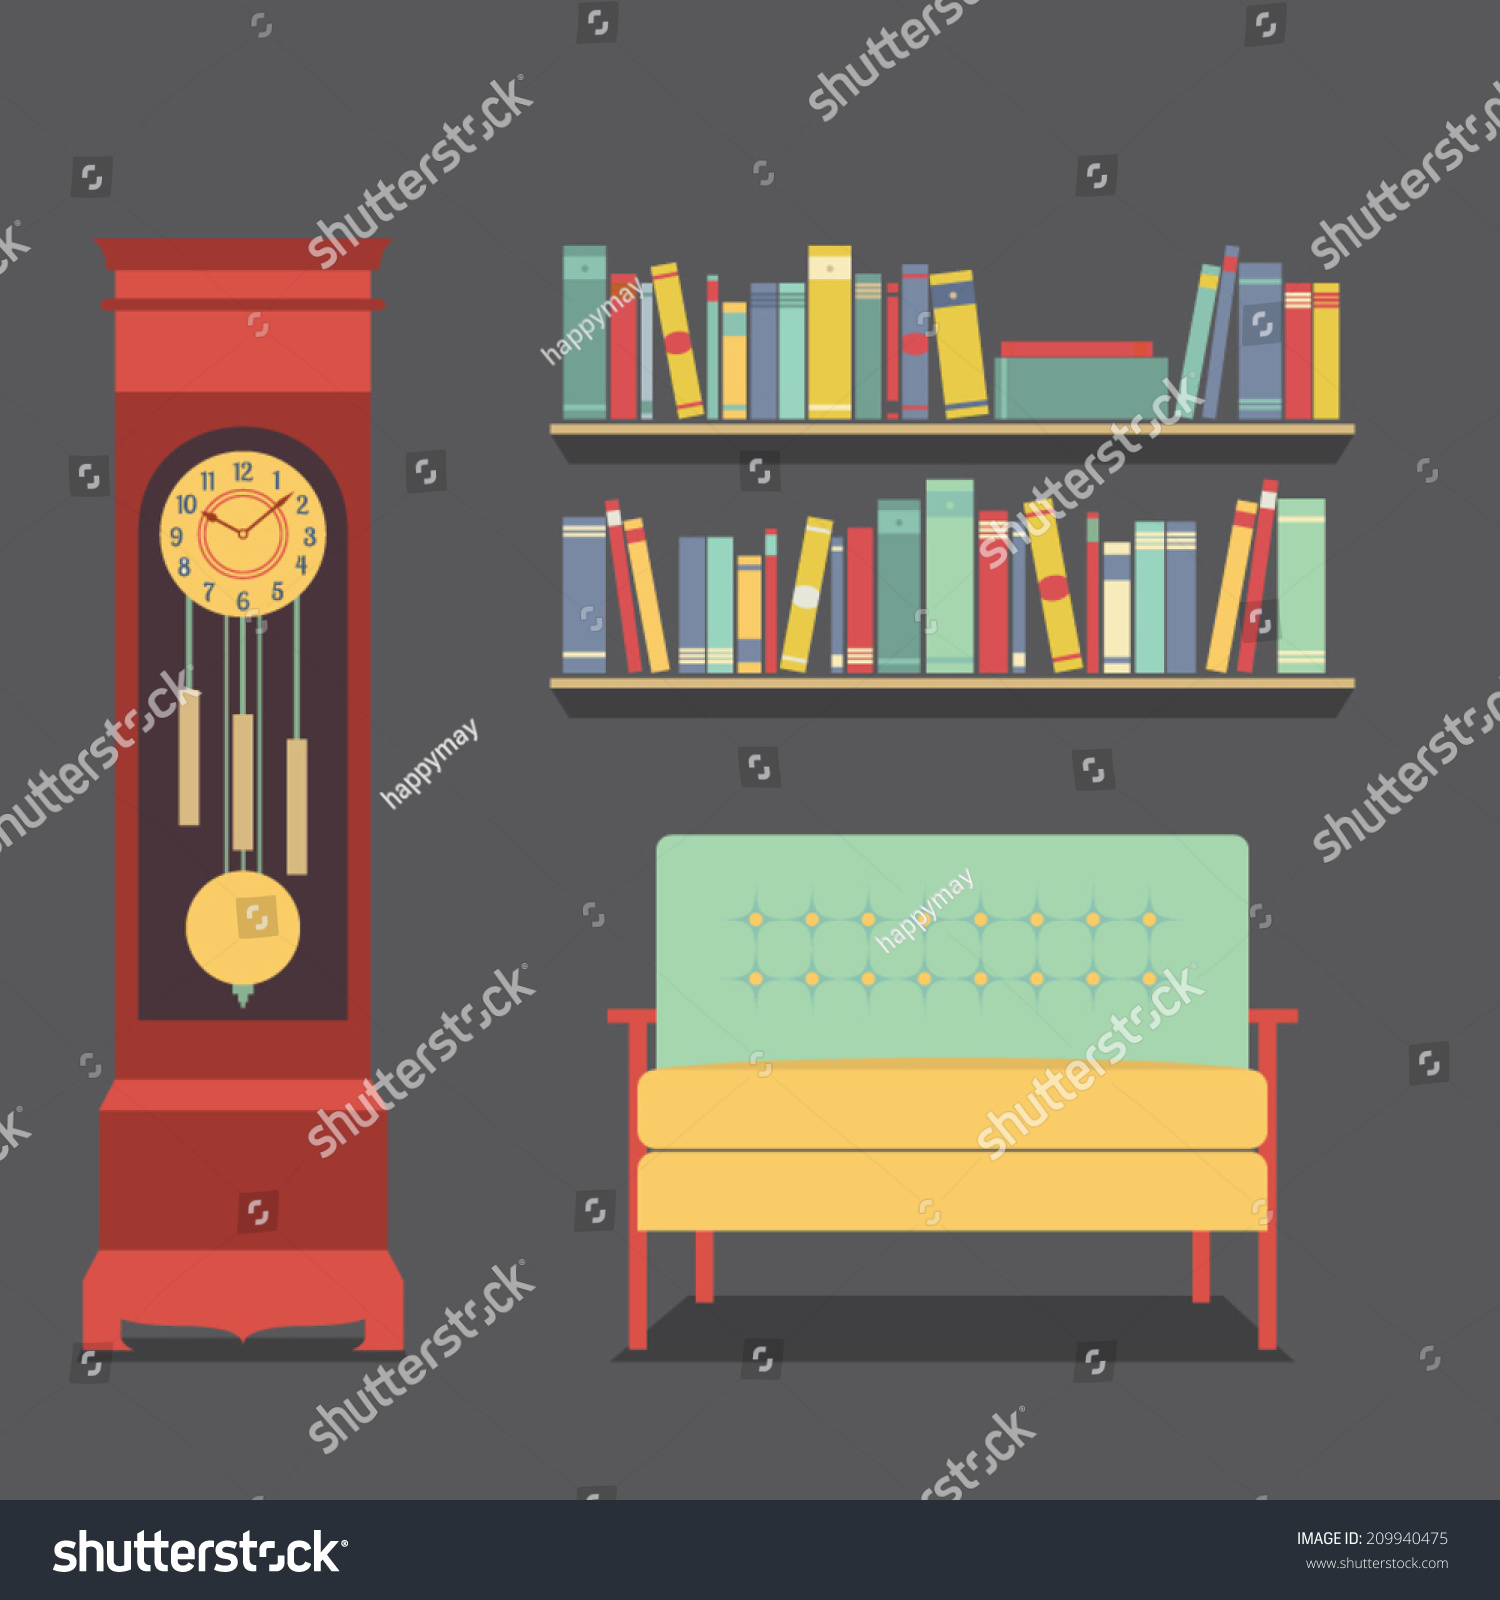 Living room interior design vector illustration stock for Interior design images vector